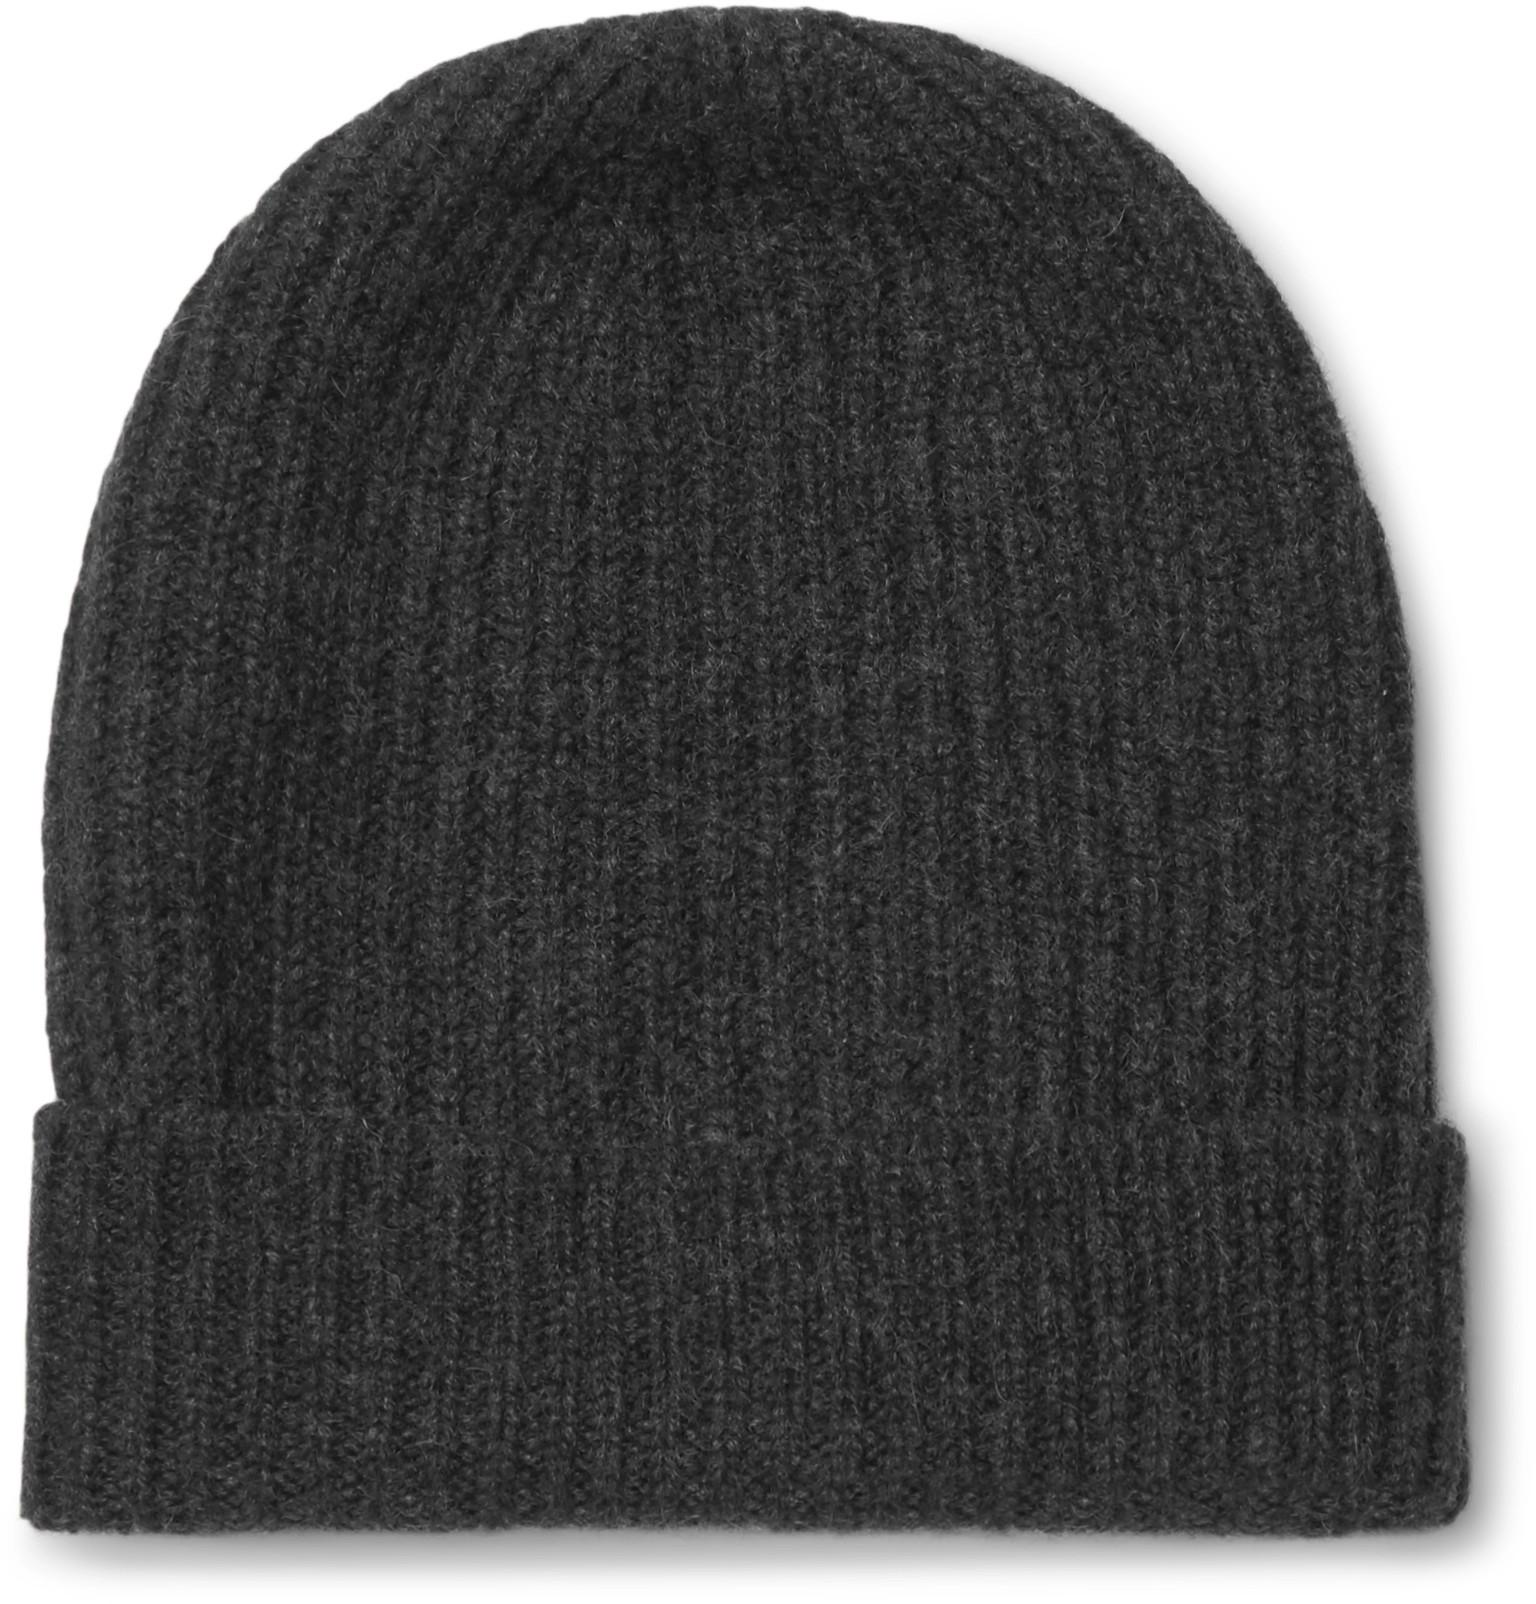 William Lockie Ribbed Mélange Cashmere Beanie in Gray for Men - Lyst bb267d24c11